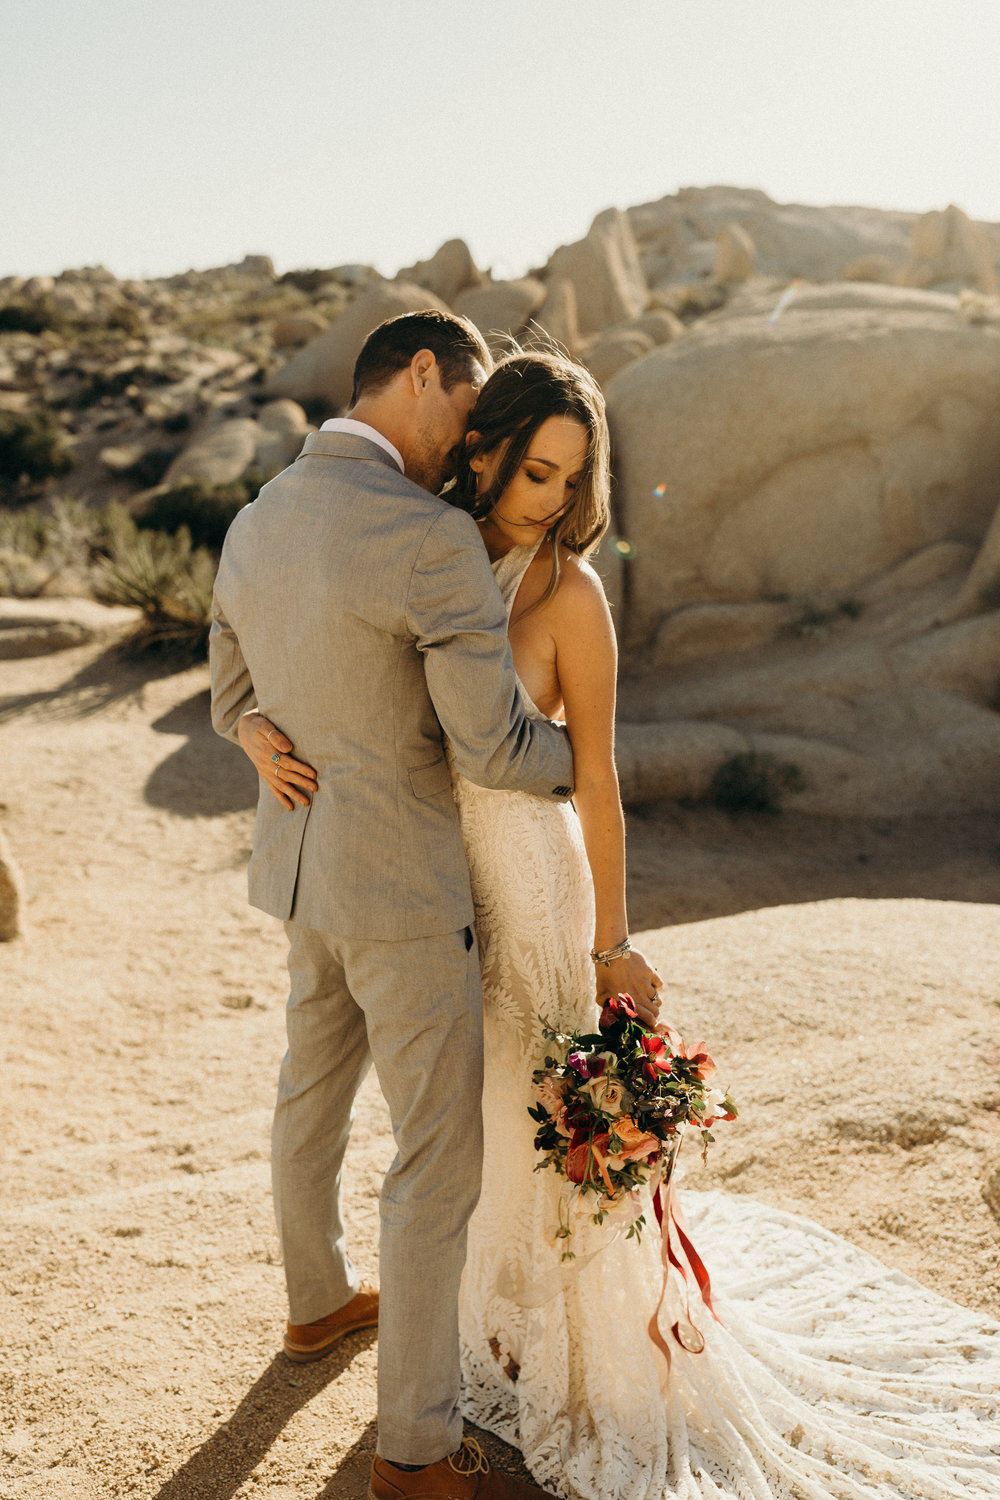 My husband and I were lucky enough to have Warren shoot our Joshua Tree Elopement in CA! I cannot recommend his services enough! Not only is he talented, but he is personable and made us feel comfortable in front of the camera.. which is huge. His editing style is beautiful and totally fit in with our personal style. Our family and friends were blown away with our photos as well (and maybe a bit jealous) and said they could literally FEEL the love. It made our family across the country feel like they were part of our special day too. We look at our photos everyday and will continue to cherish them forever. Thanks again, Warren! - Jen & Devin